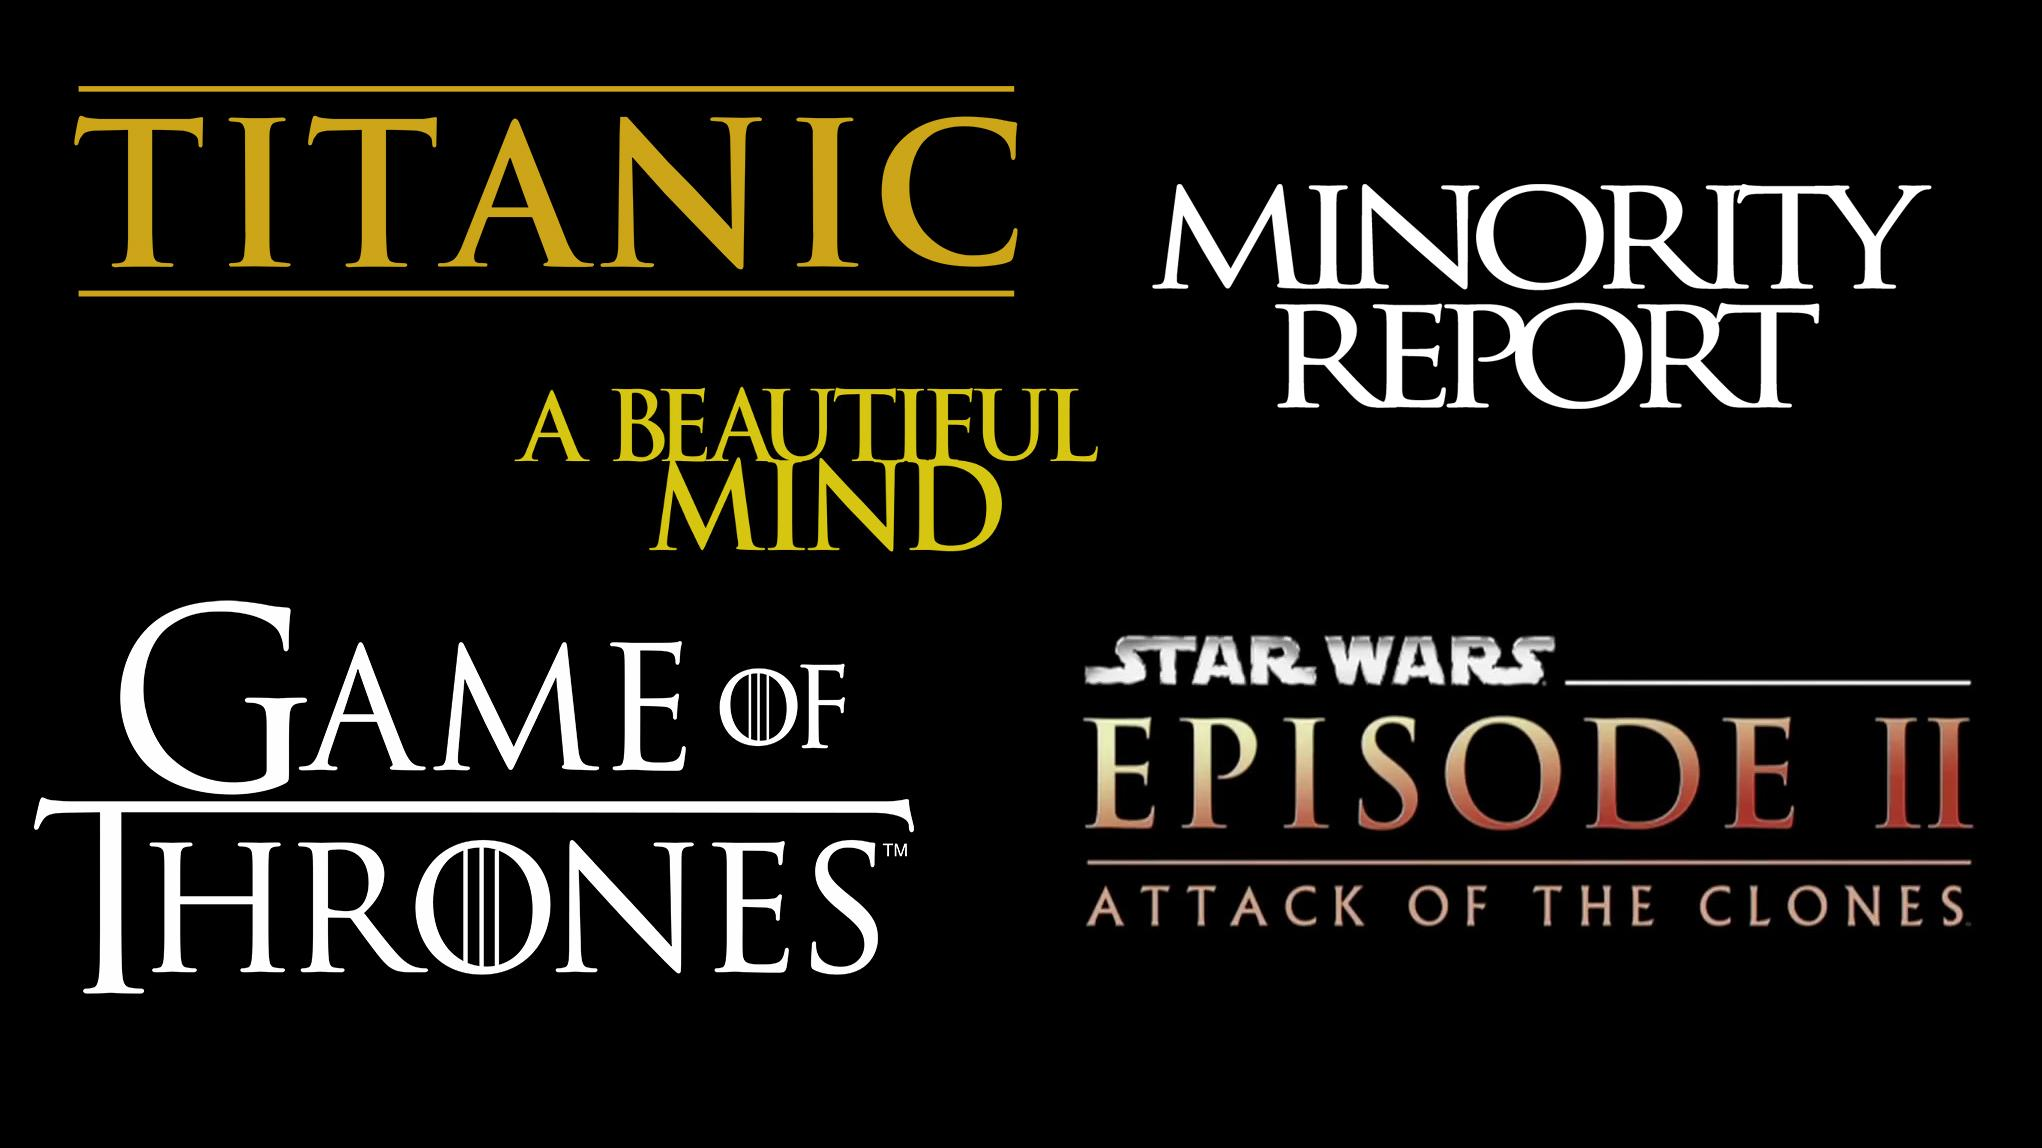 Trajan used in logos for Titanic, Minority Report, A Beautiful Mind, Game of Thrones and Stars Wars Episode II